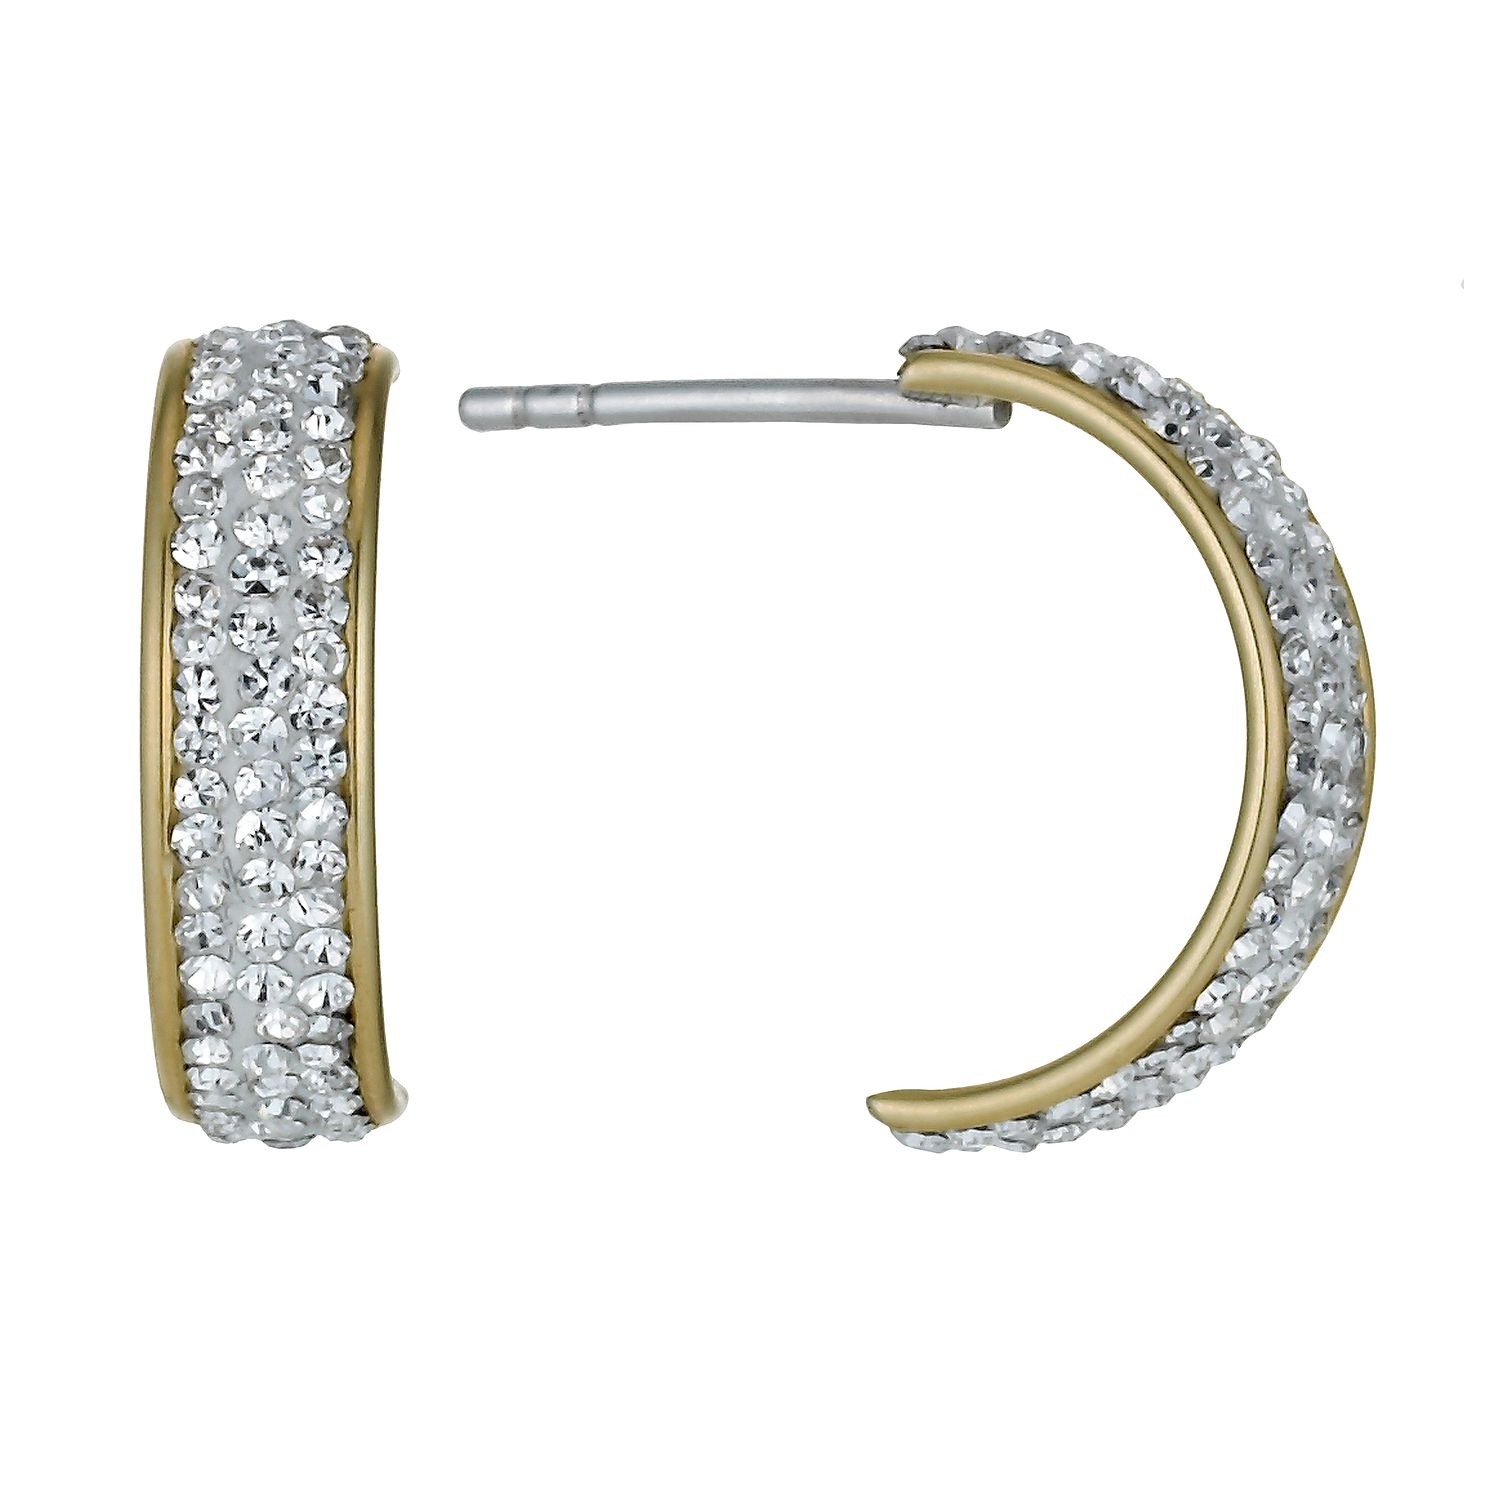 Together Silver & 9ct Bonded Gold Crystal Half Hoop Earrings - Product number 9760539